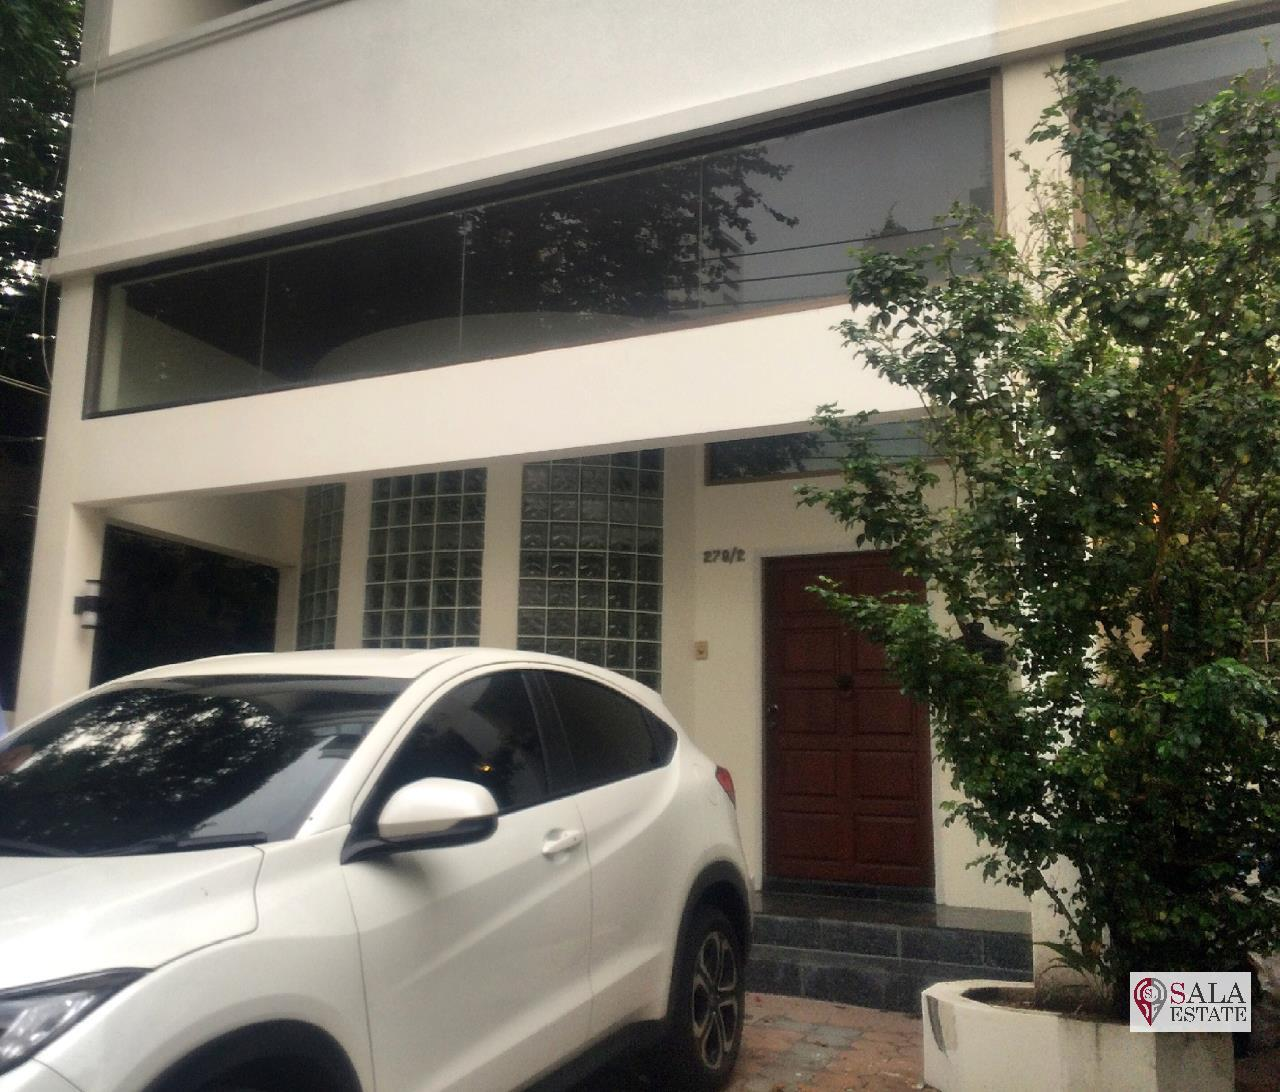 SALA ESTATE Agency's ( FOR RENT/SELL ) TOWNHOUSE IN SUKHUMVIT SOI 31 - 4 FLOORS, 3 BEDROOMS 5 BATHROOMS, FULLY FURNISHED 2